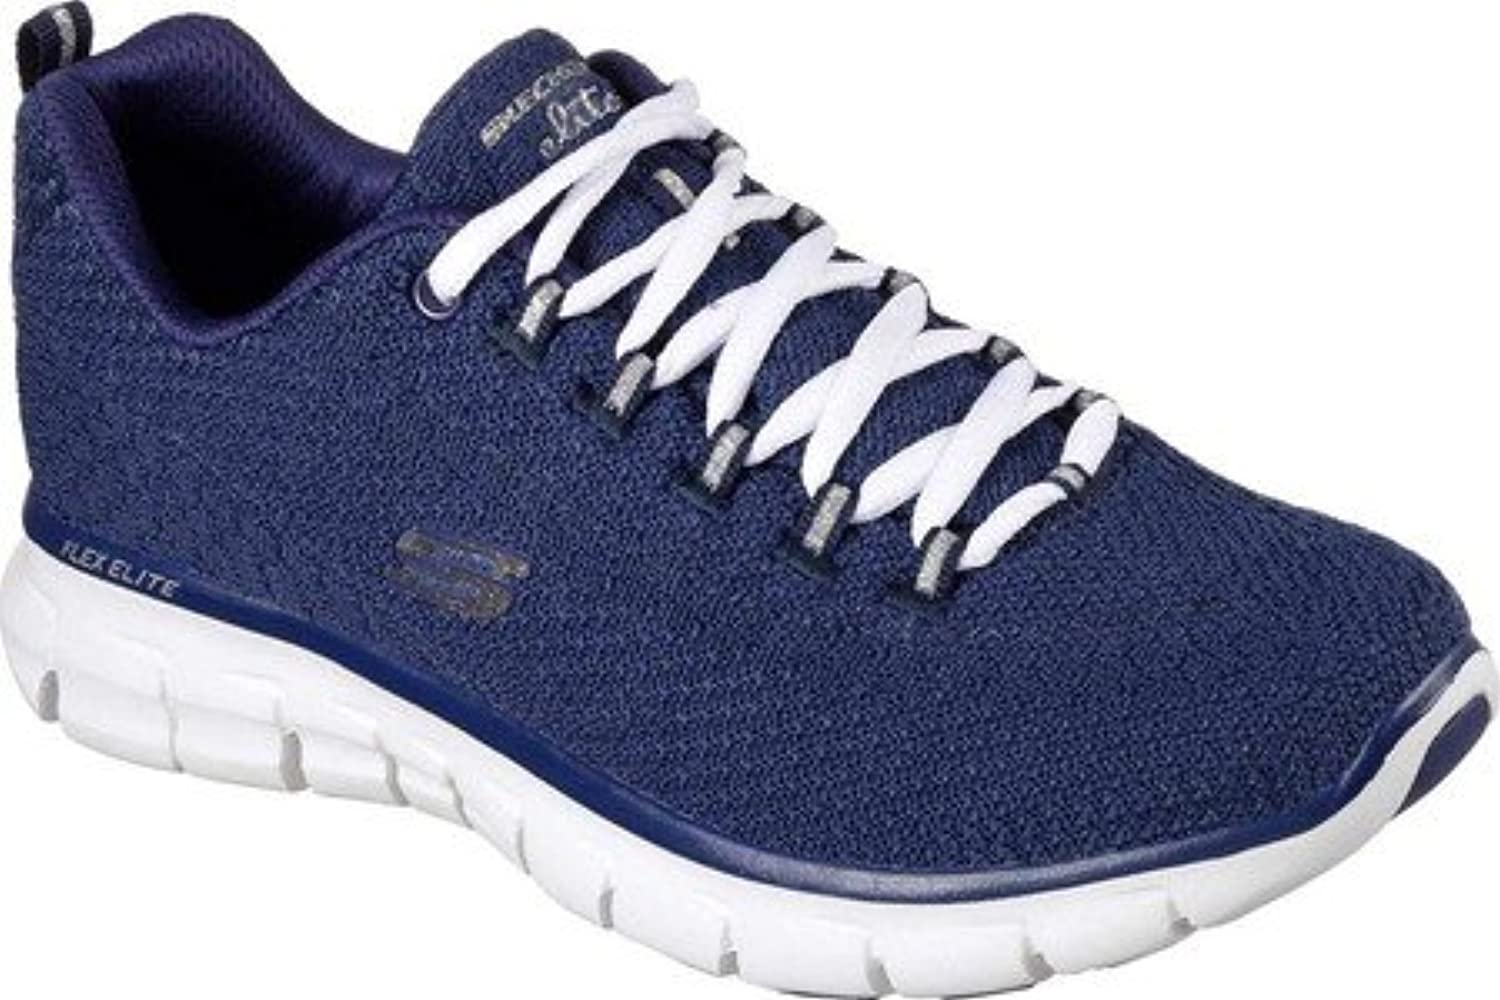 Skechers Women's Synergy Safe and Sound Training shoes